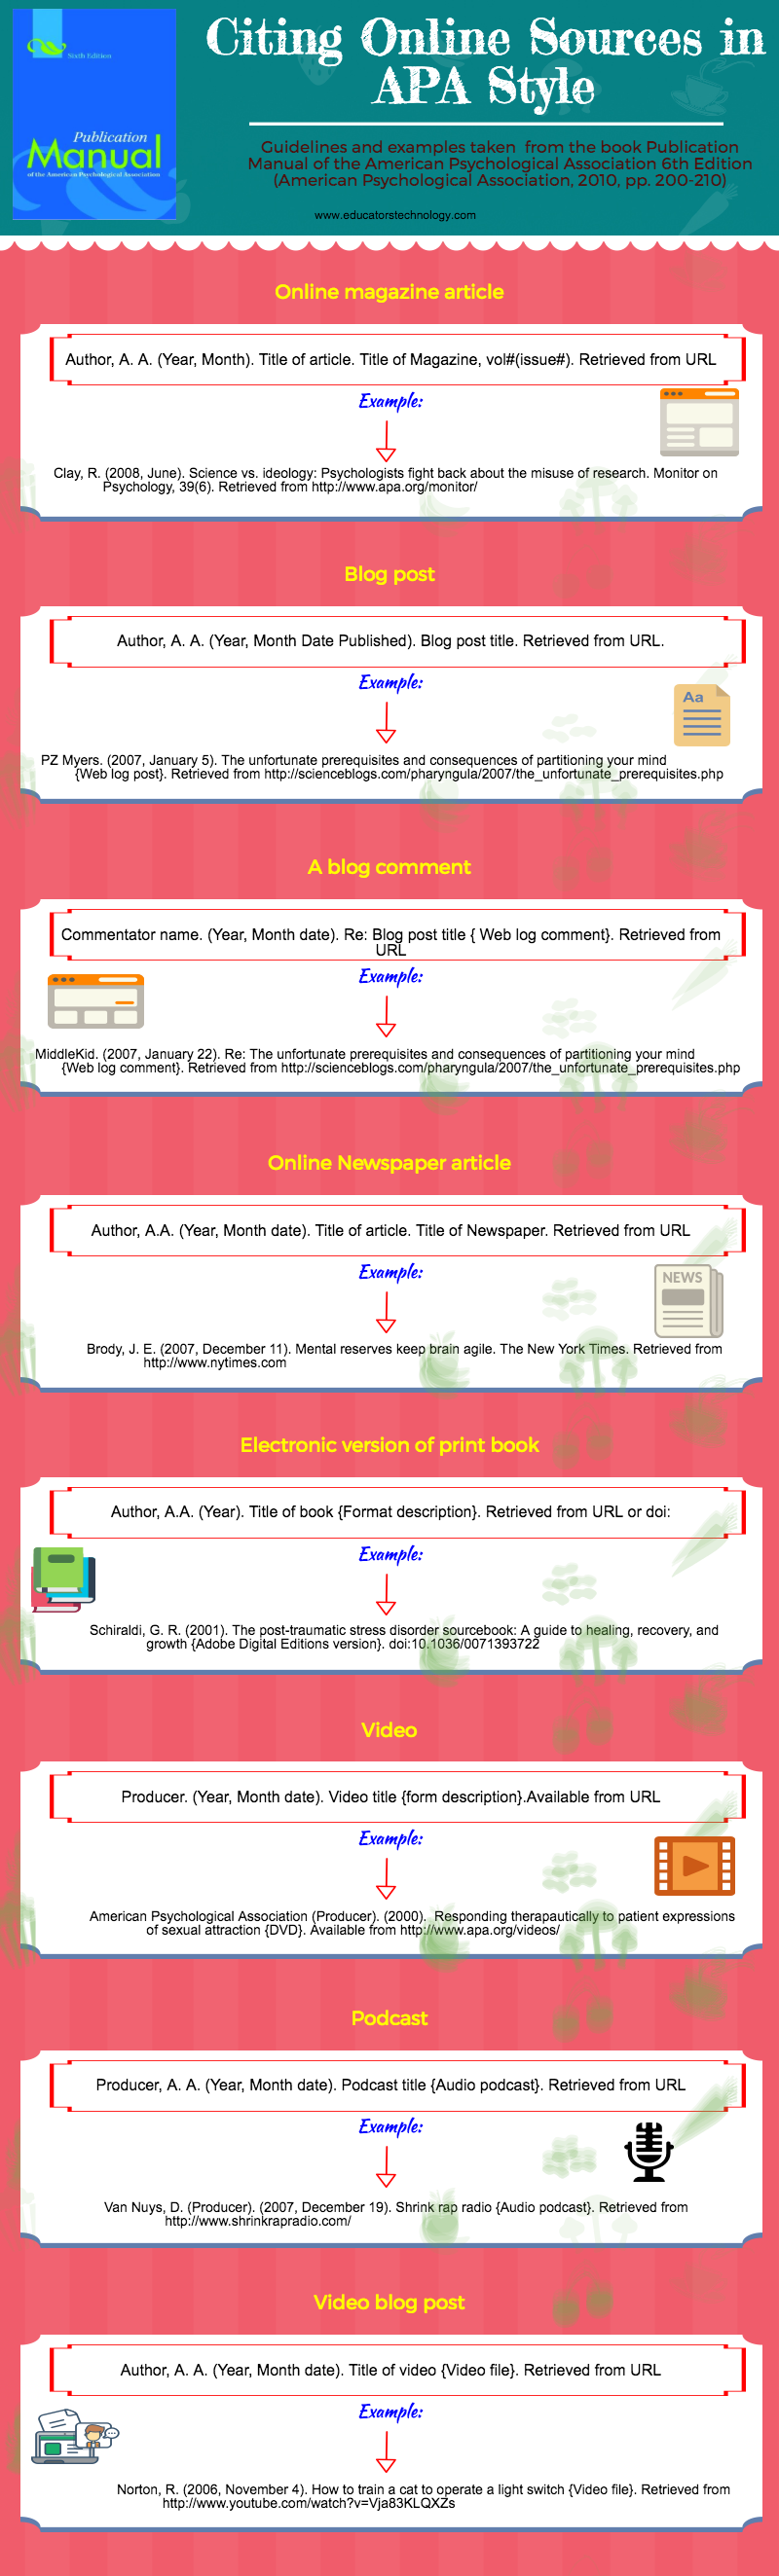 An Interesting Visual on How to Cite Online Sources in APA Style ...